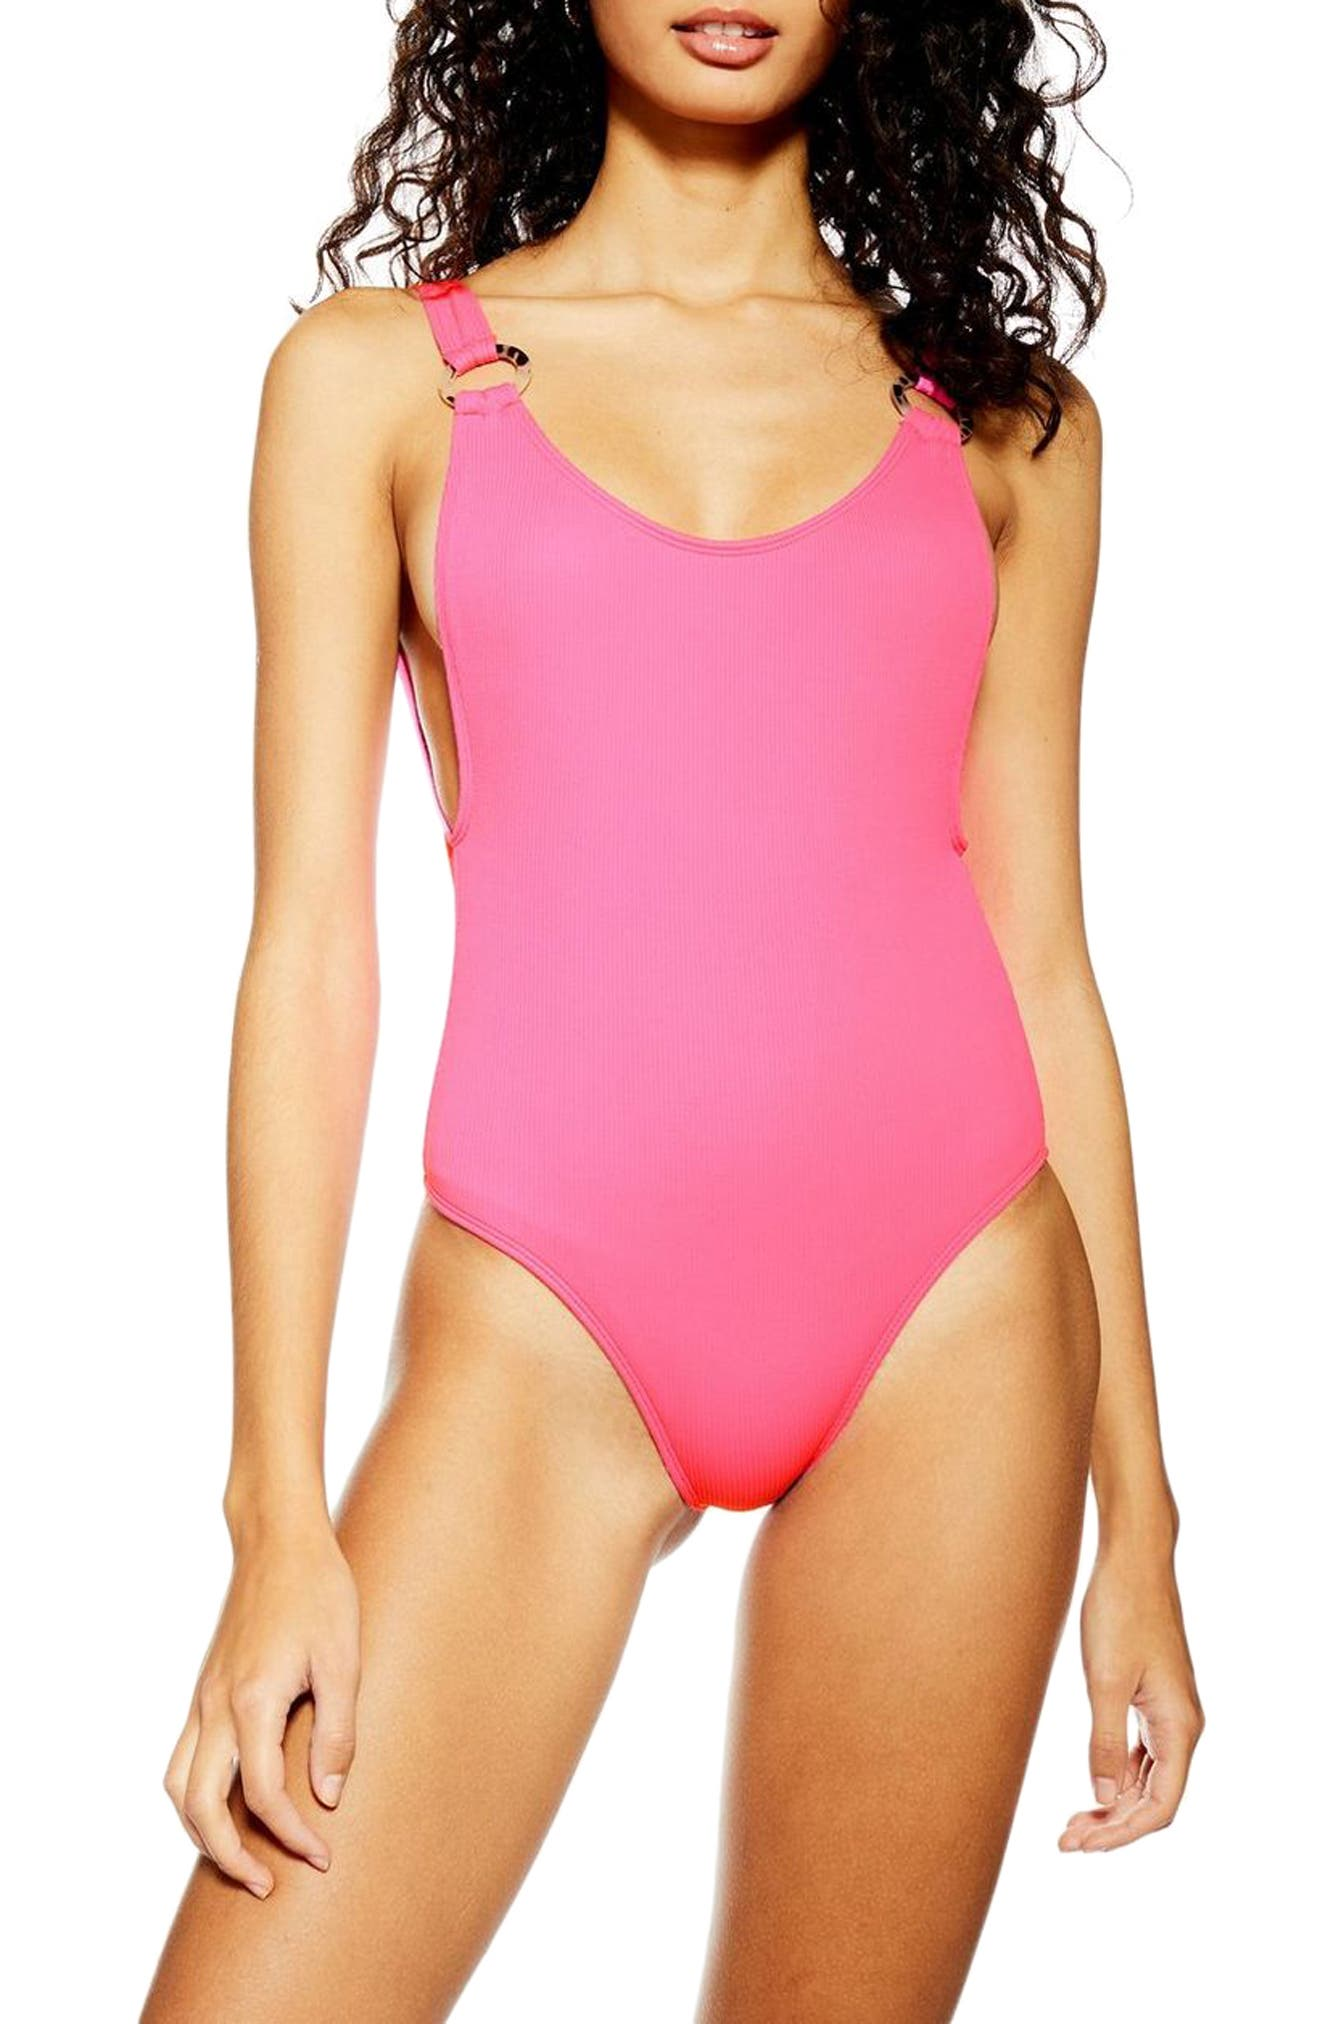 Topshop Ring Strap One-Piece Swimsuit, US (fits like 14) - Pink